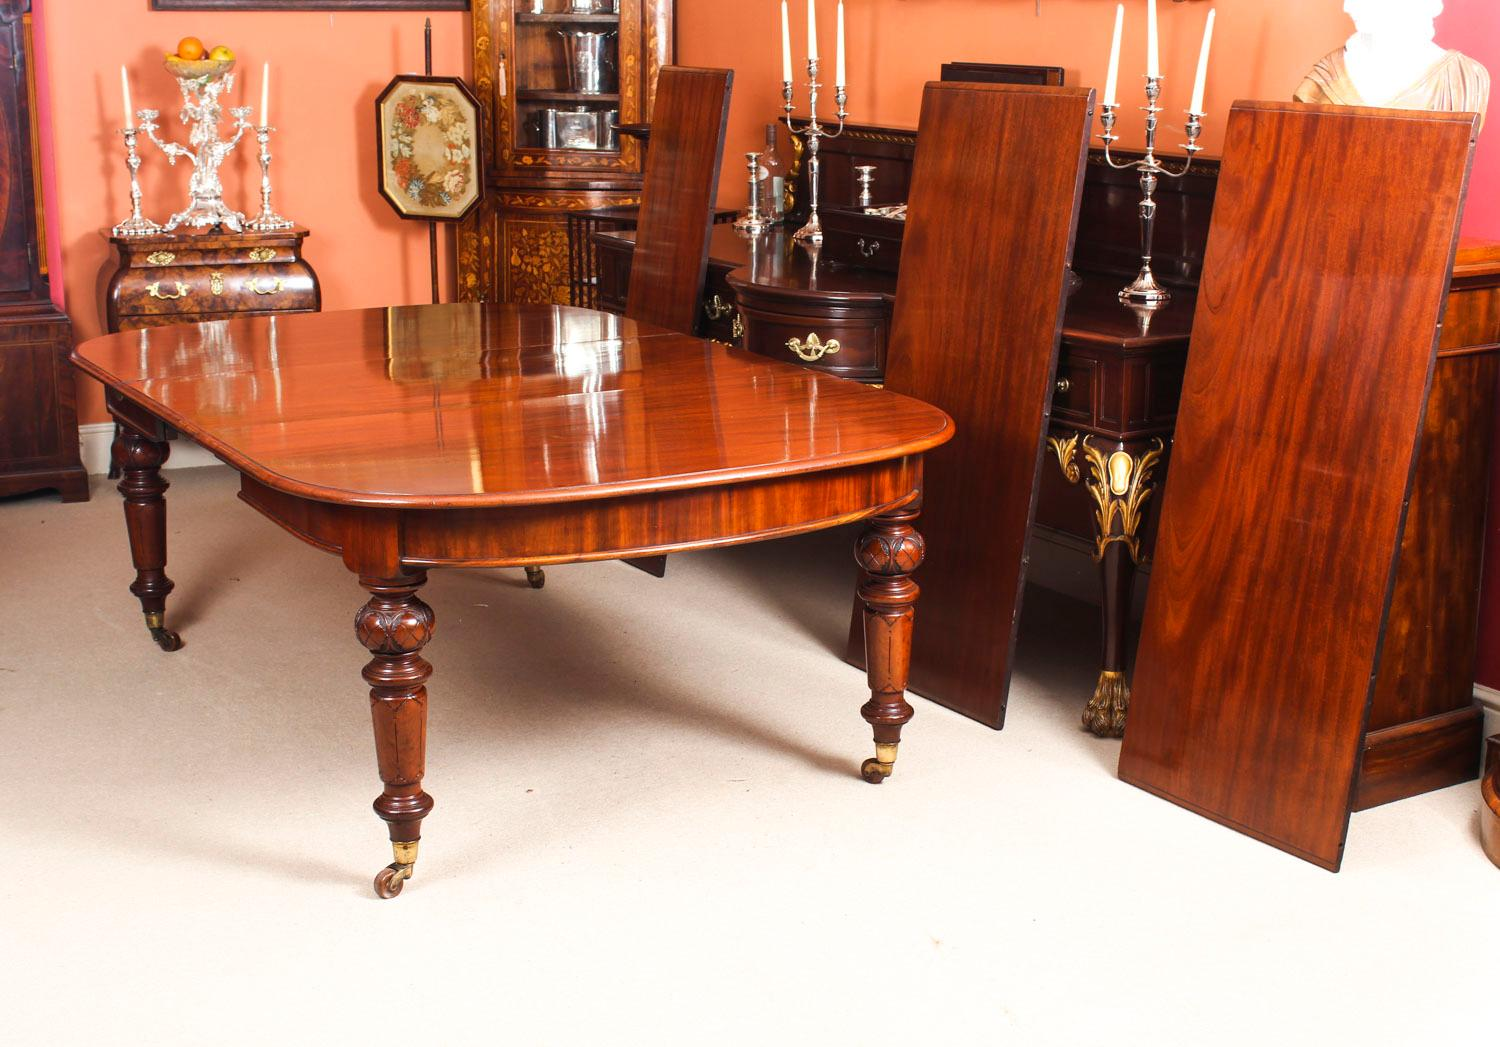 Antique Victorian D End Mahogany Dining Table And 14 Chairs 19th Century For At 1stdibs